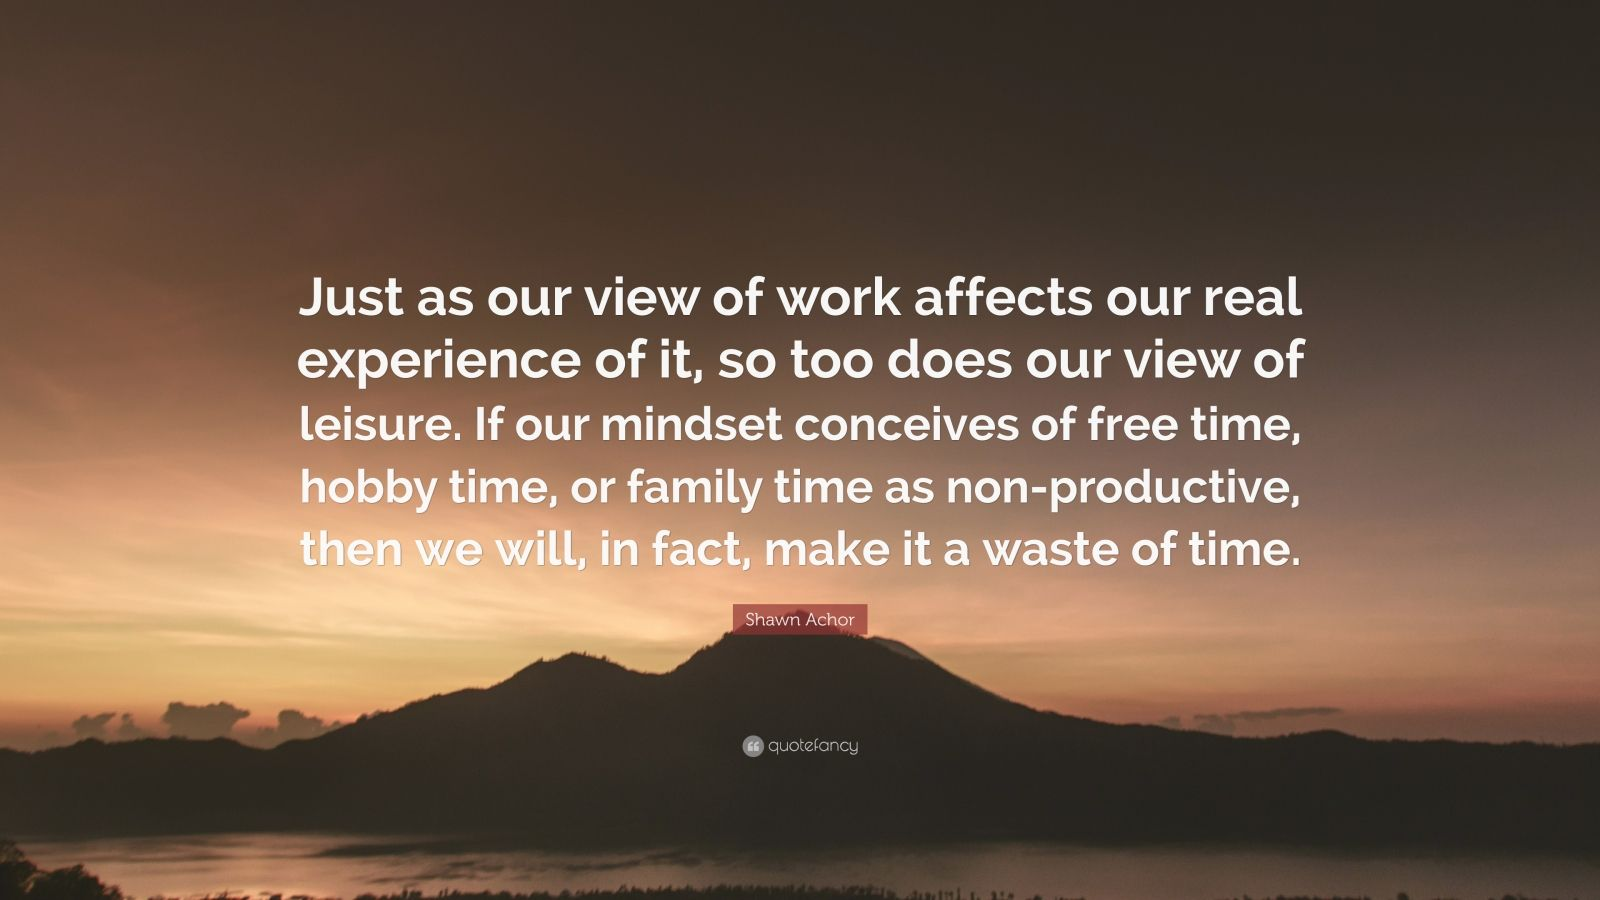 """Shawn Achor Quote: """"Just as our view of work affects our real experience of it, so too does our view of leisure. If our mindset conceives of free time, hobby time, or family time as non-productive, then we will, in fact, make it a waste of time."""""""